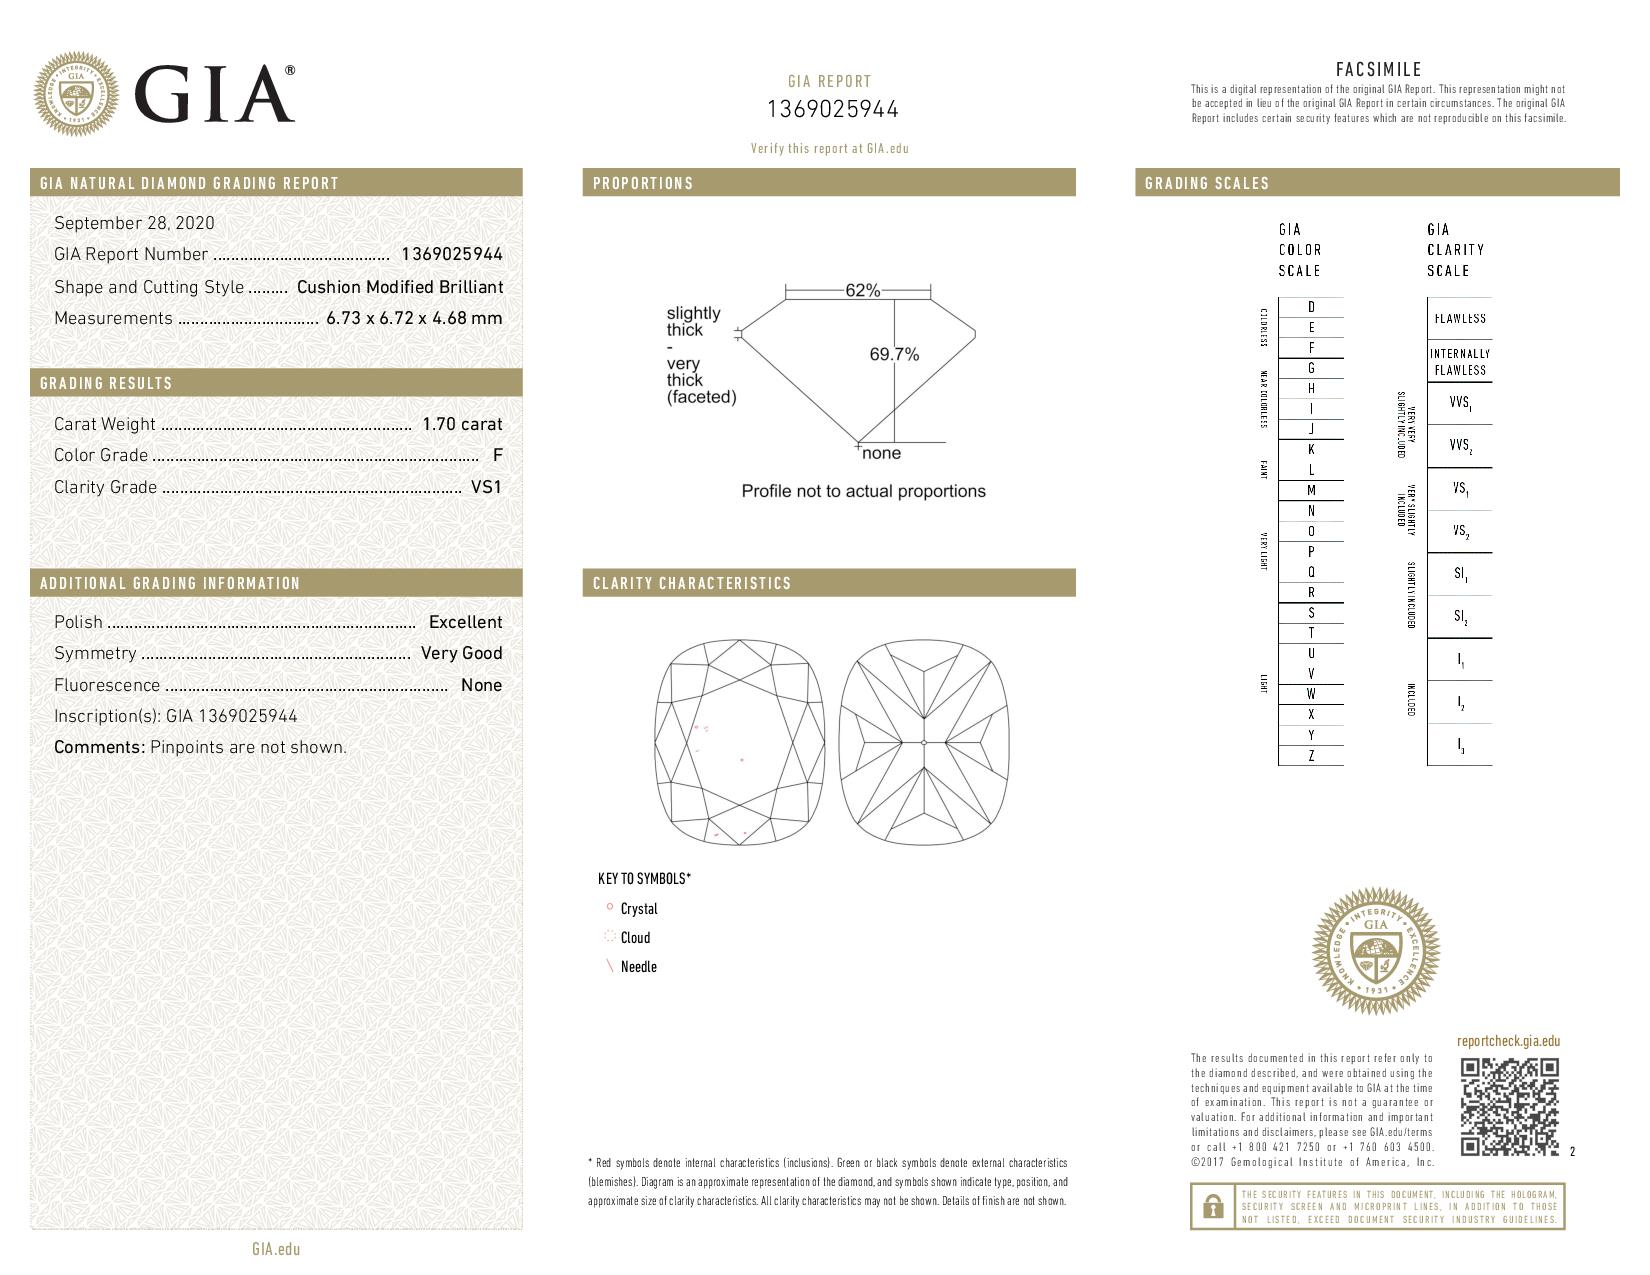 This is a 1.70 carat cushion shape, F color, VS1 clarity natural diamond accompanied by a GIA grading report.